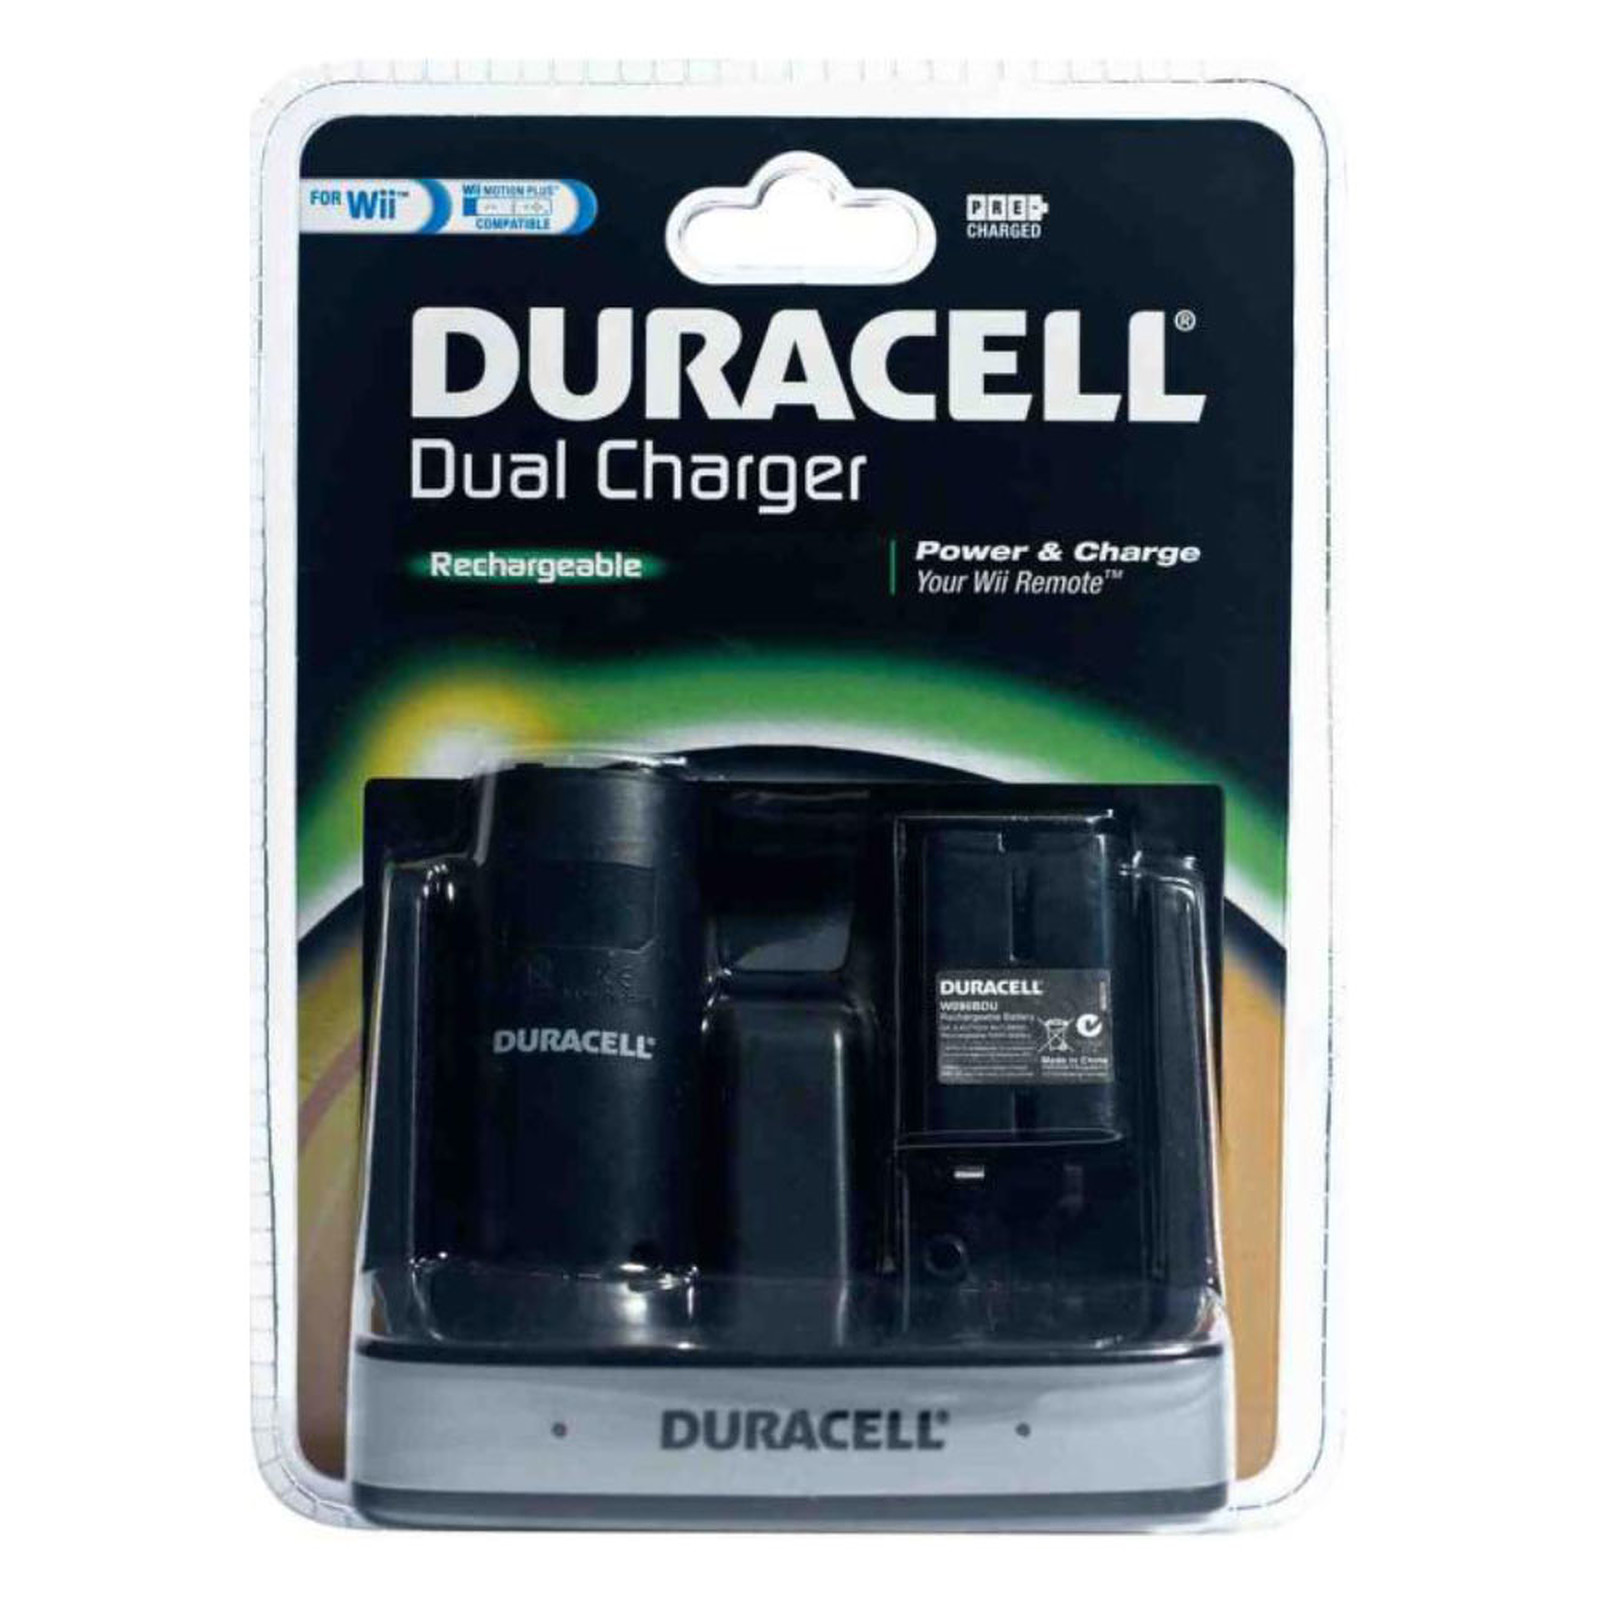 DURACELL Dual Charger (Wii)